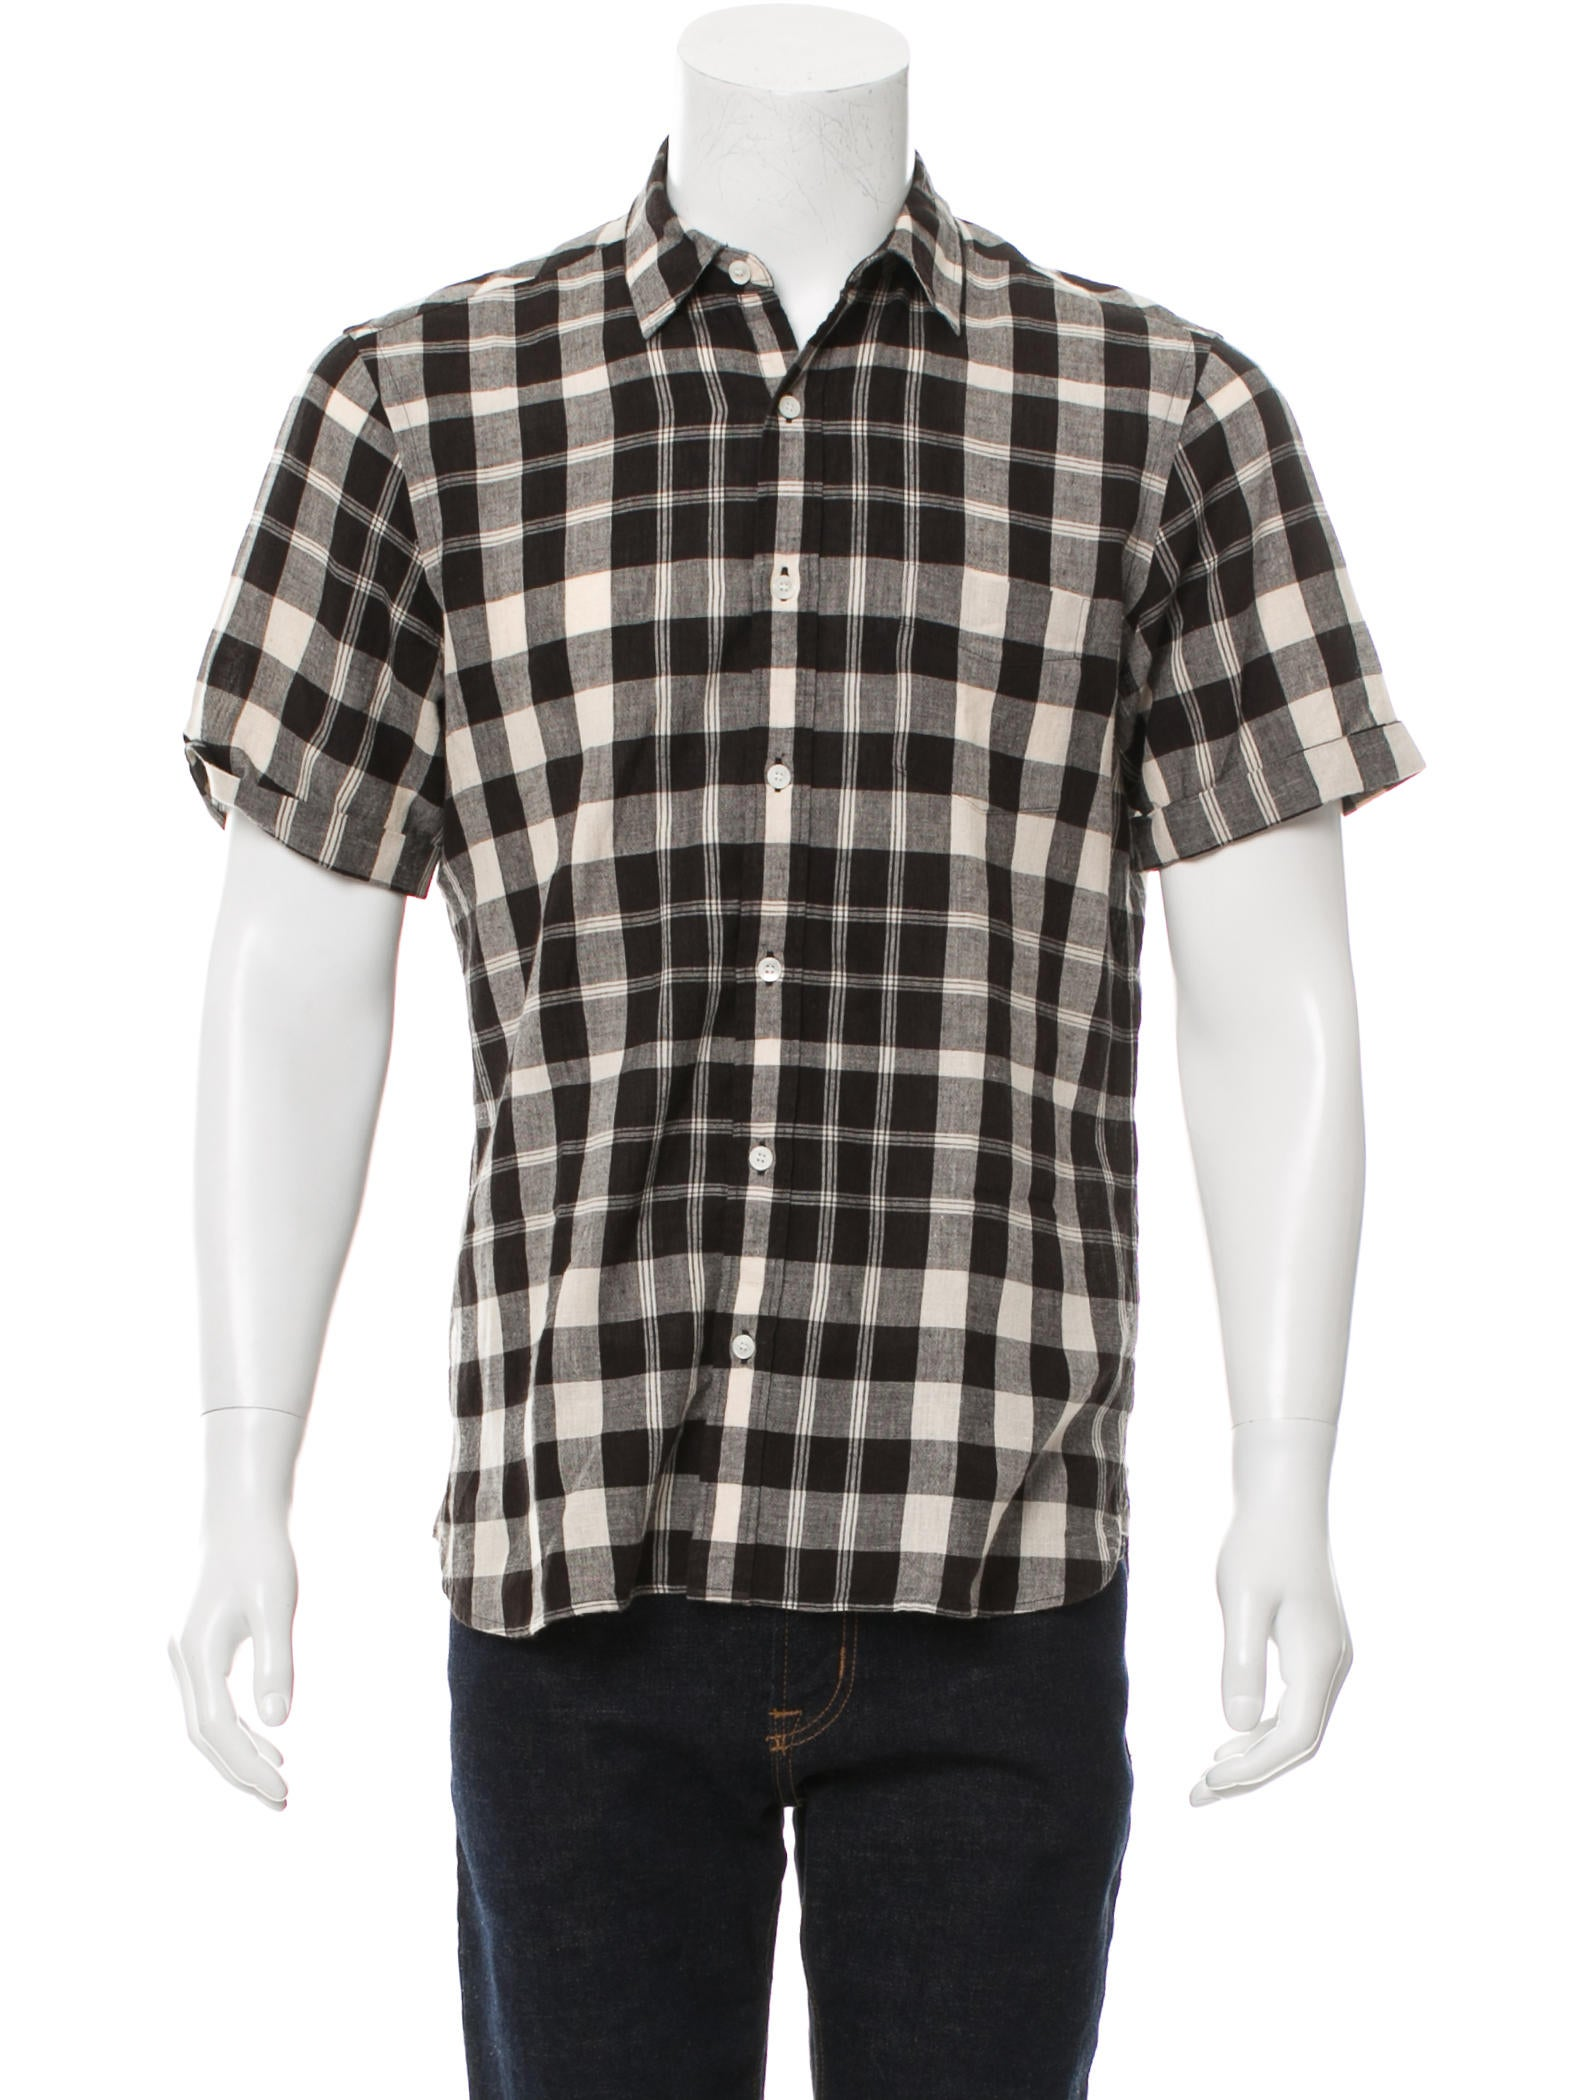 Burberry brit plaid button up shirt clothing bbr28231 for Burberry brit plaid shirt